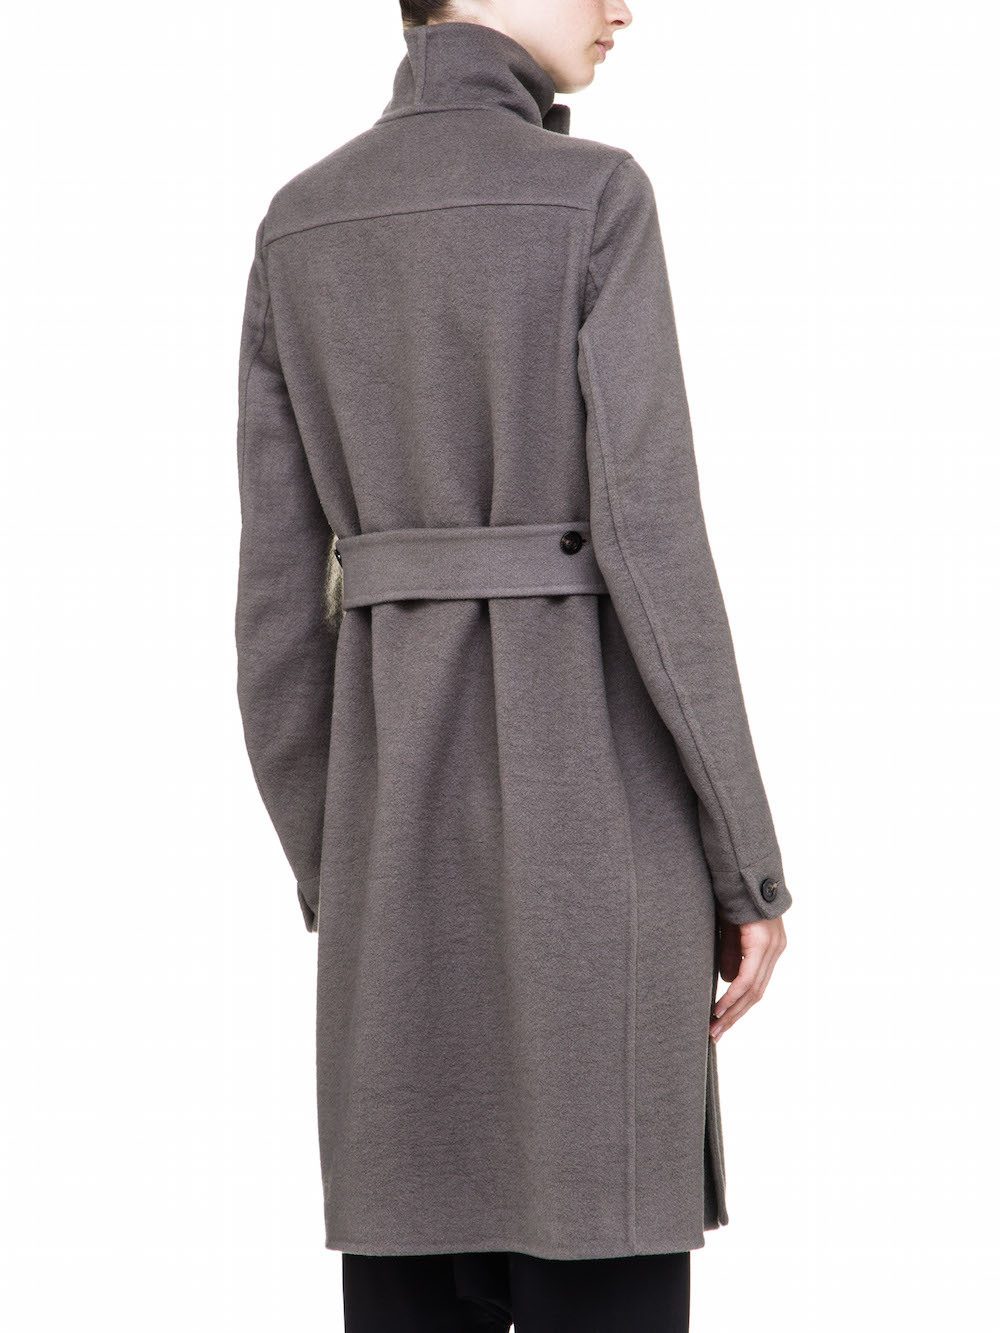 RICK OWENS  FALL WINTER COAT